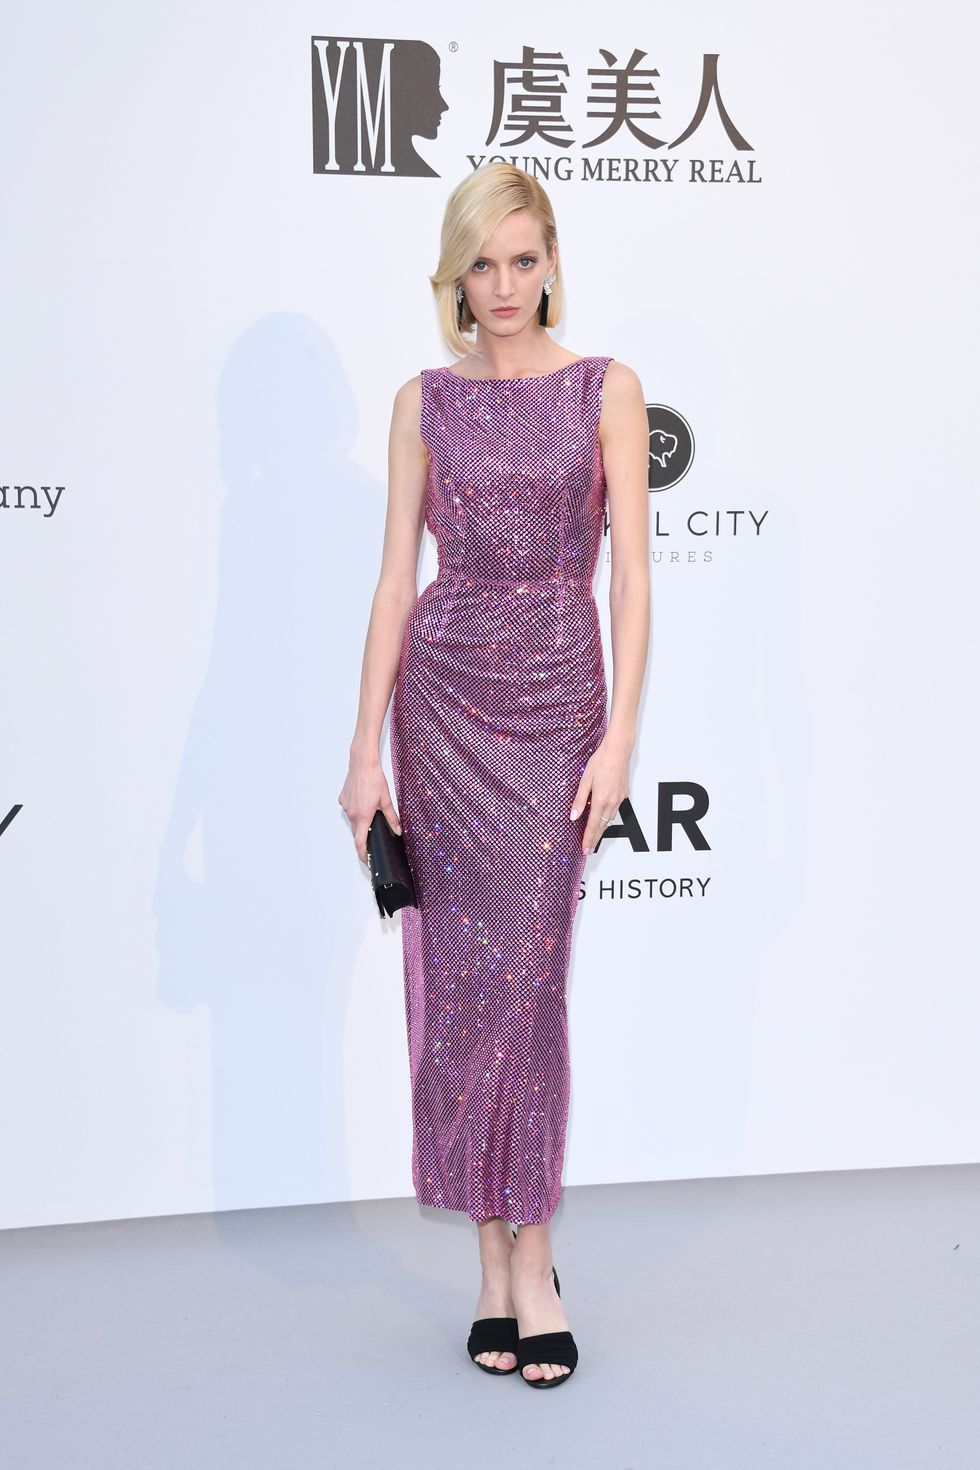 Daria Strokous In a sleeveless pink metallic column gown.